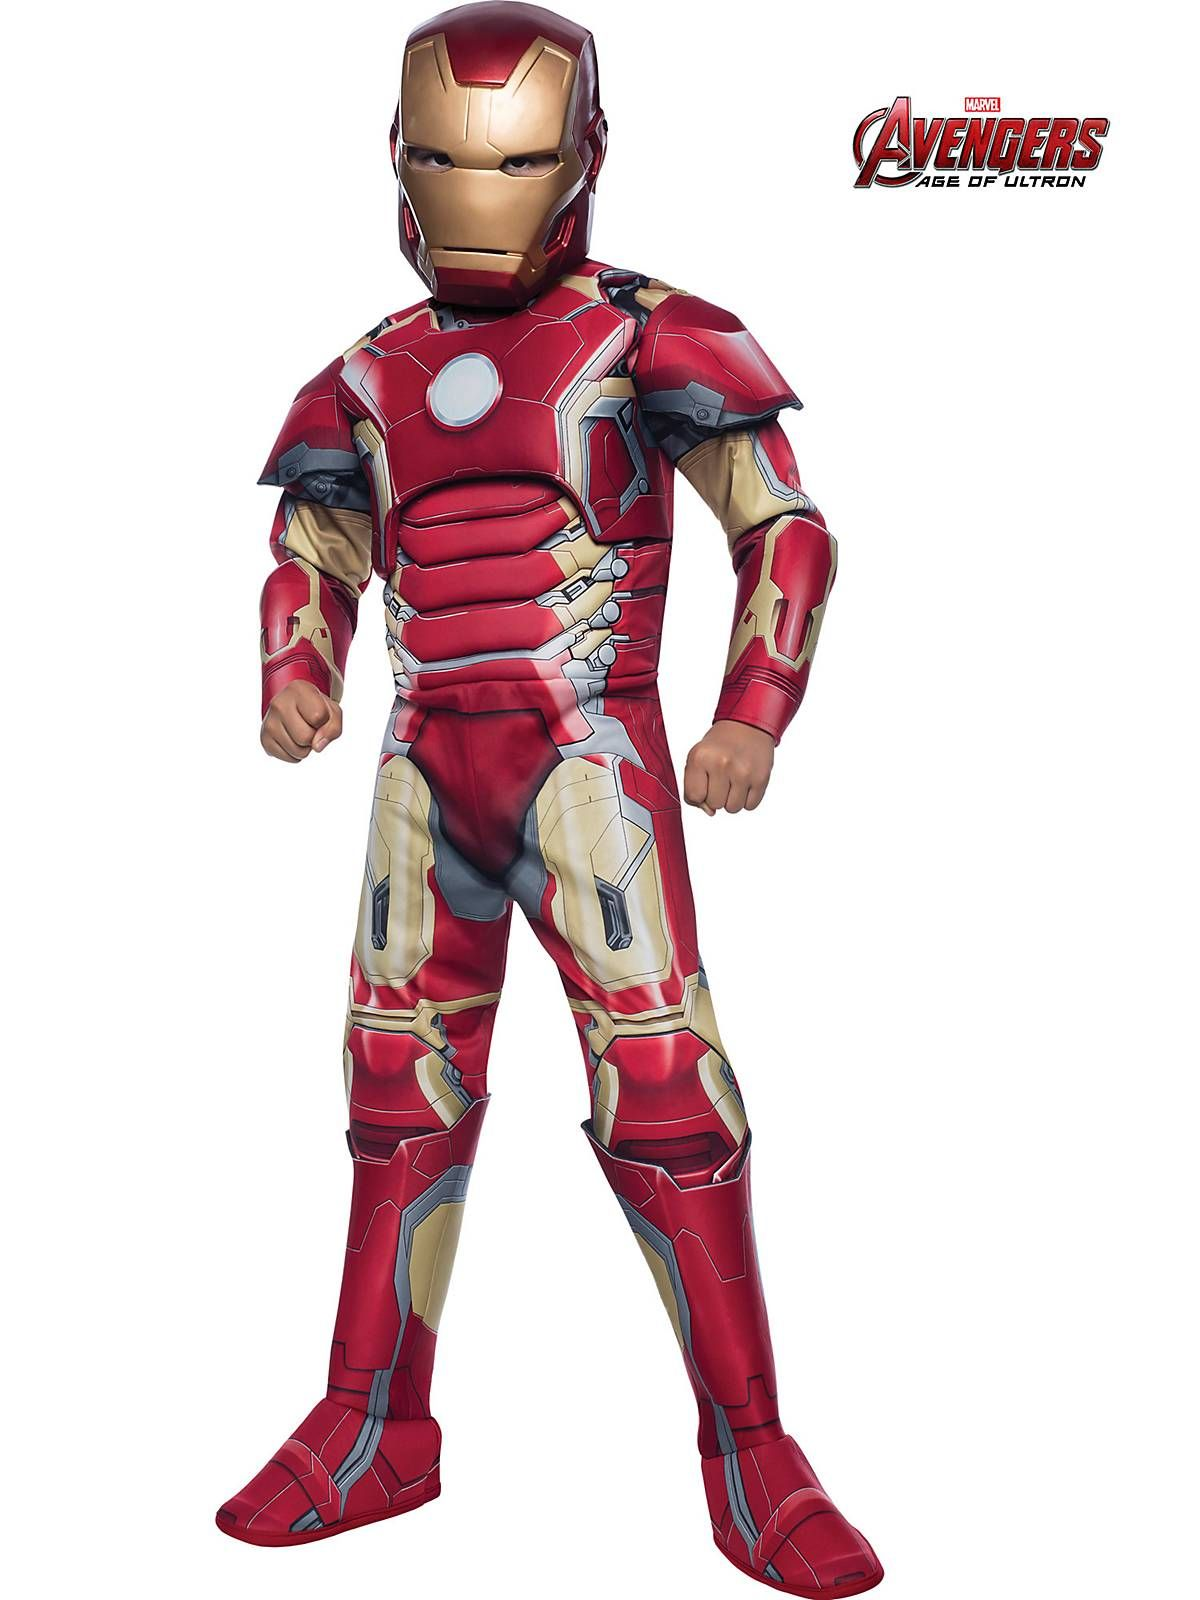 Boys Avengers 2 Deluxe Iron Man Mark 43 Costume | Avengers Costumes  sc 1 st  Pinterest : childrens superhero costumes  - Germanpascual.Com